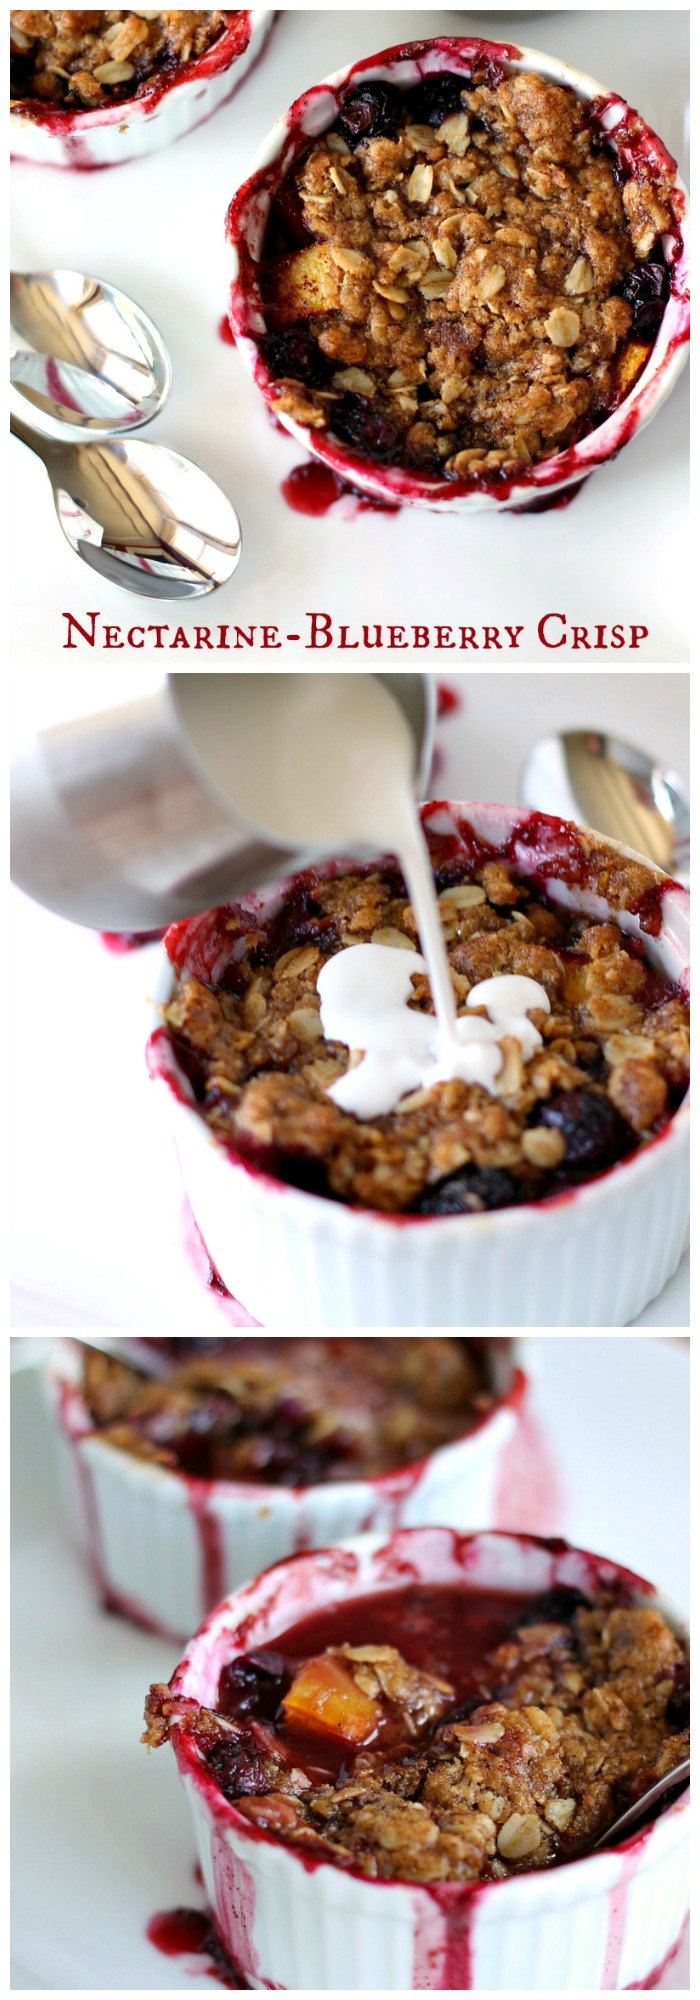 Individual servings of blueberry nectarine crisp can be topped with cream at breakfast or ice cream for dessert!